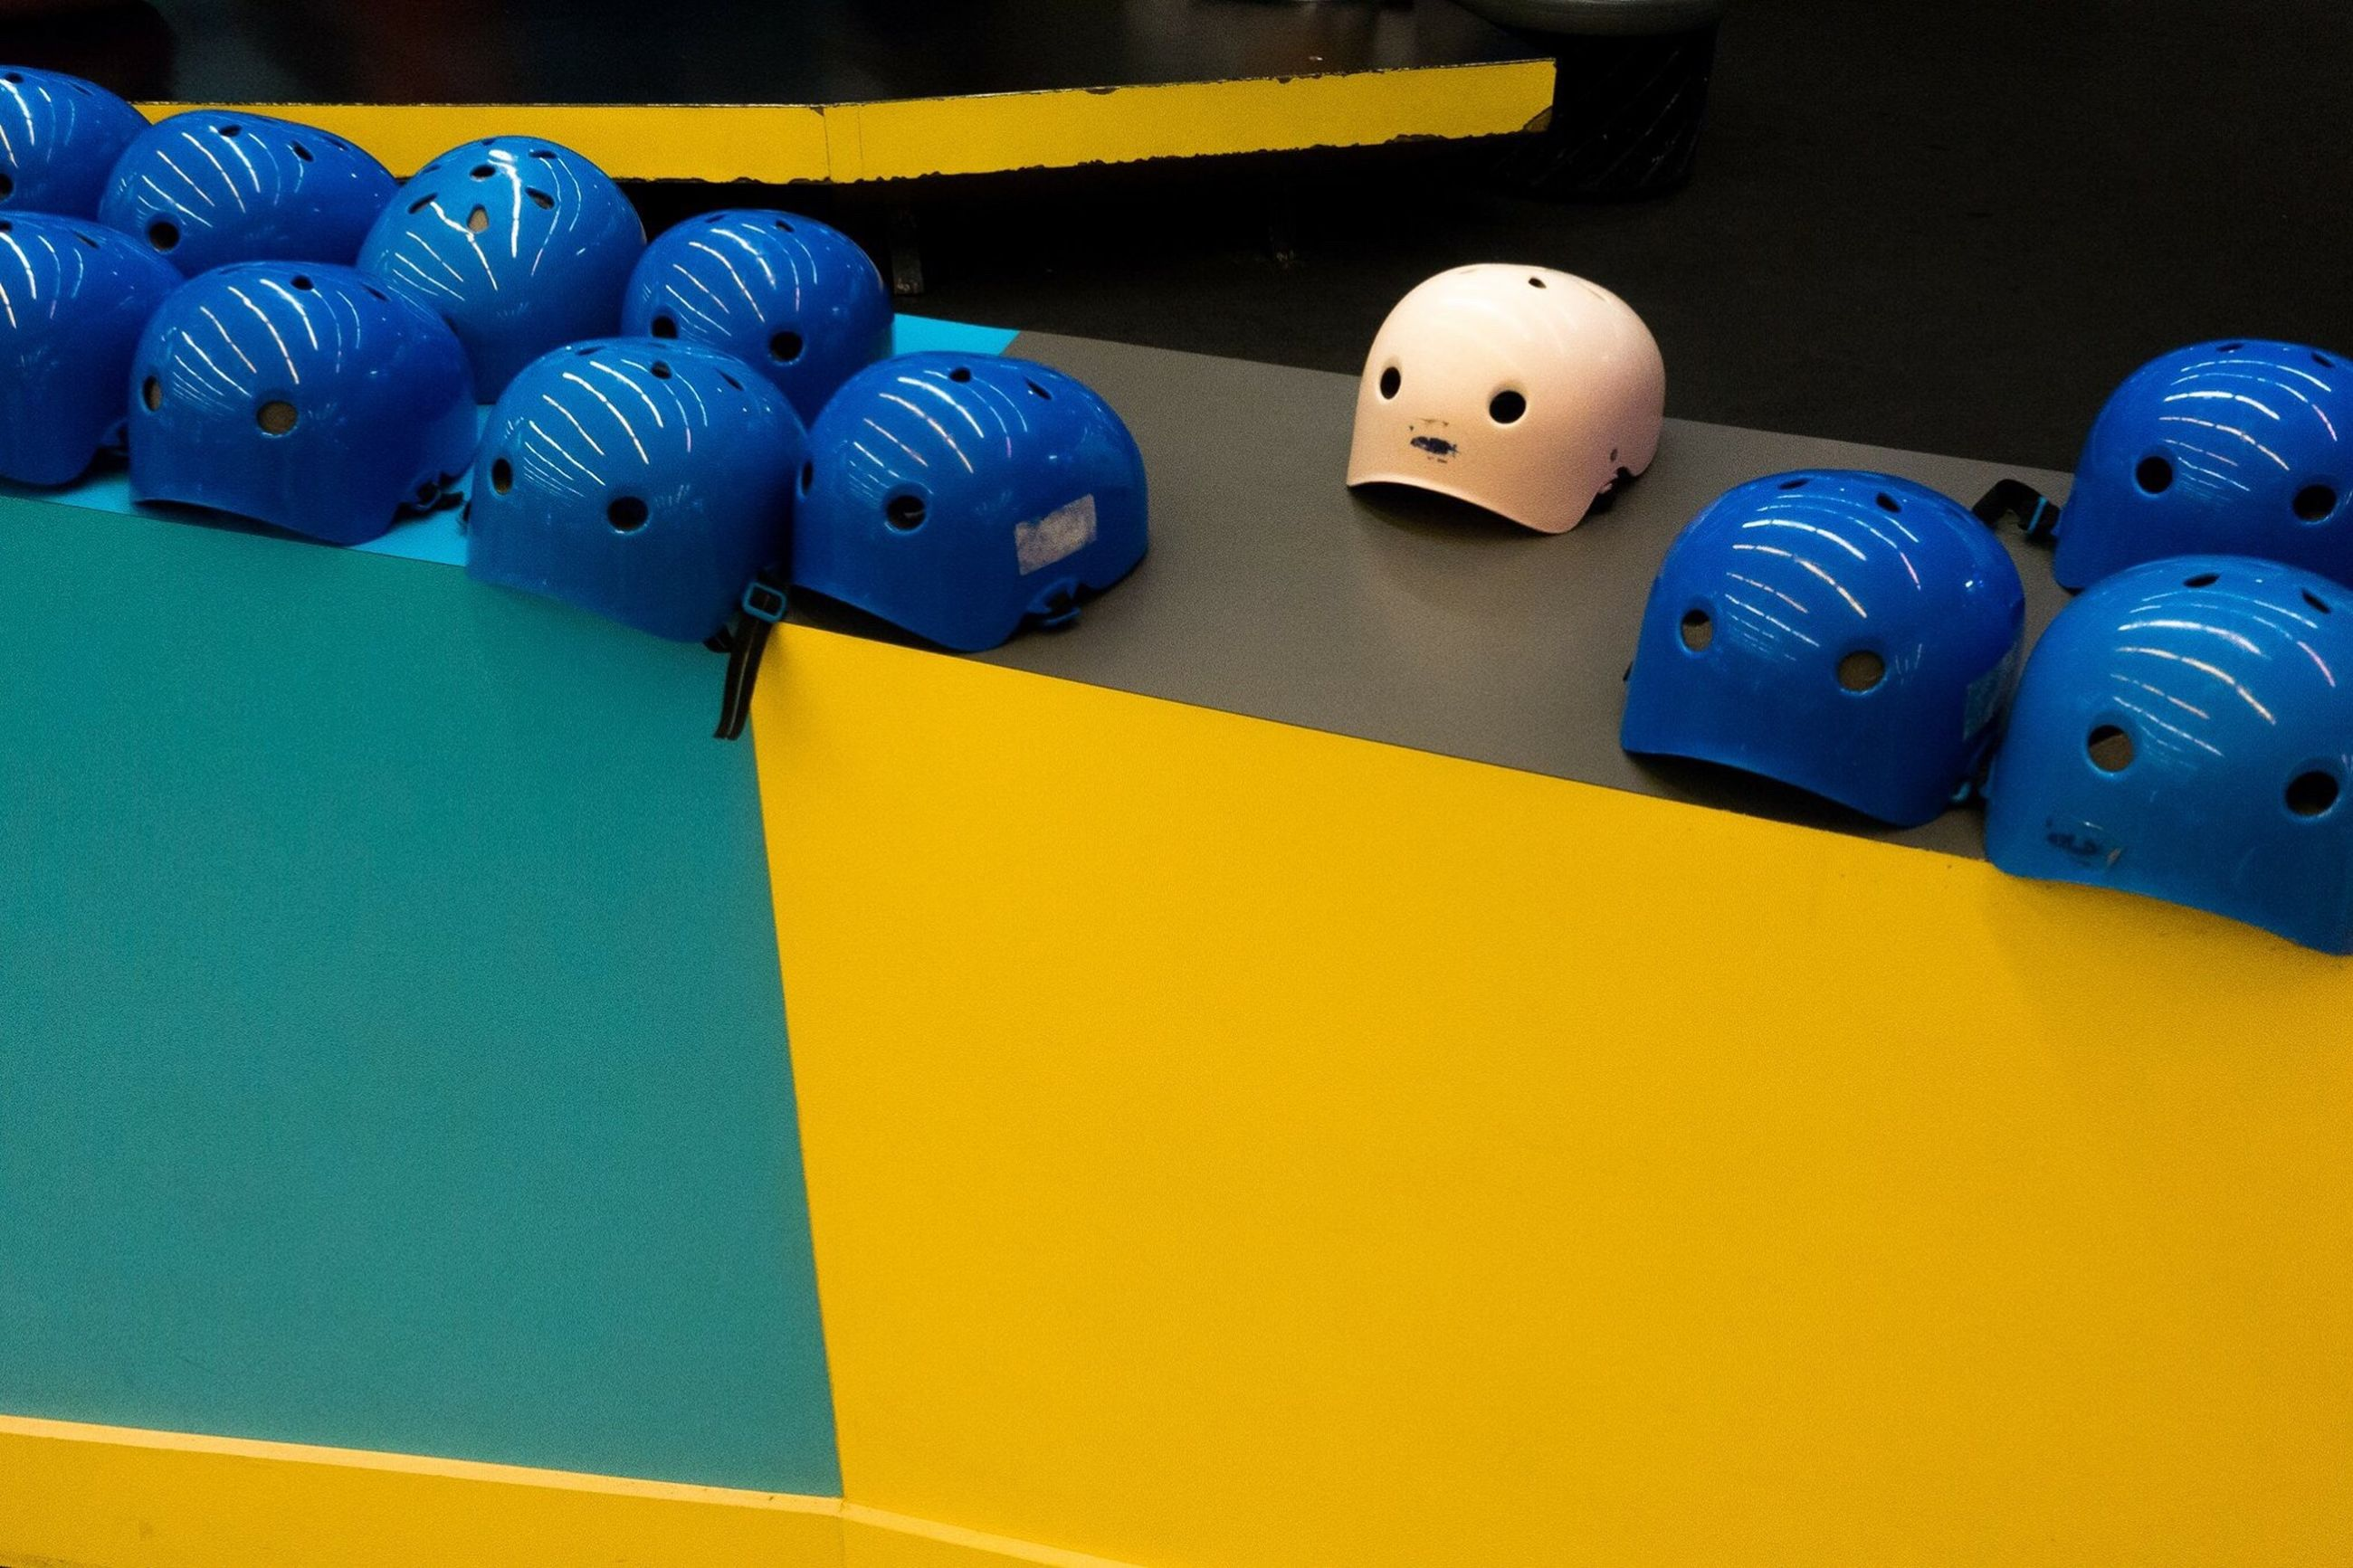 indoors, multi colored, blue, still life, yellow, variation, close-up, high angle view, copy space, in a row, technology, no people, large group of objects, table, leisure games, equipment, choice, wall - building feature, man made object, colorful